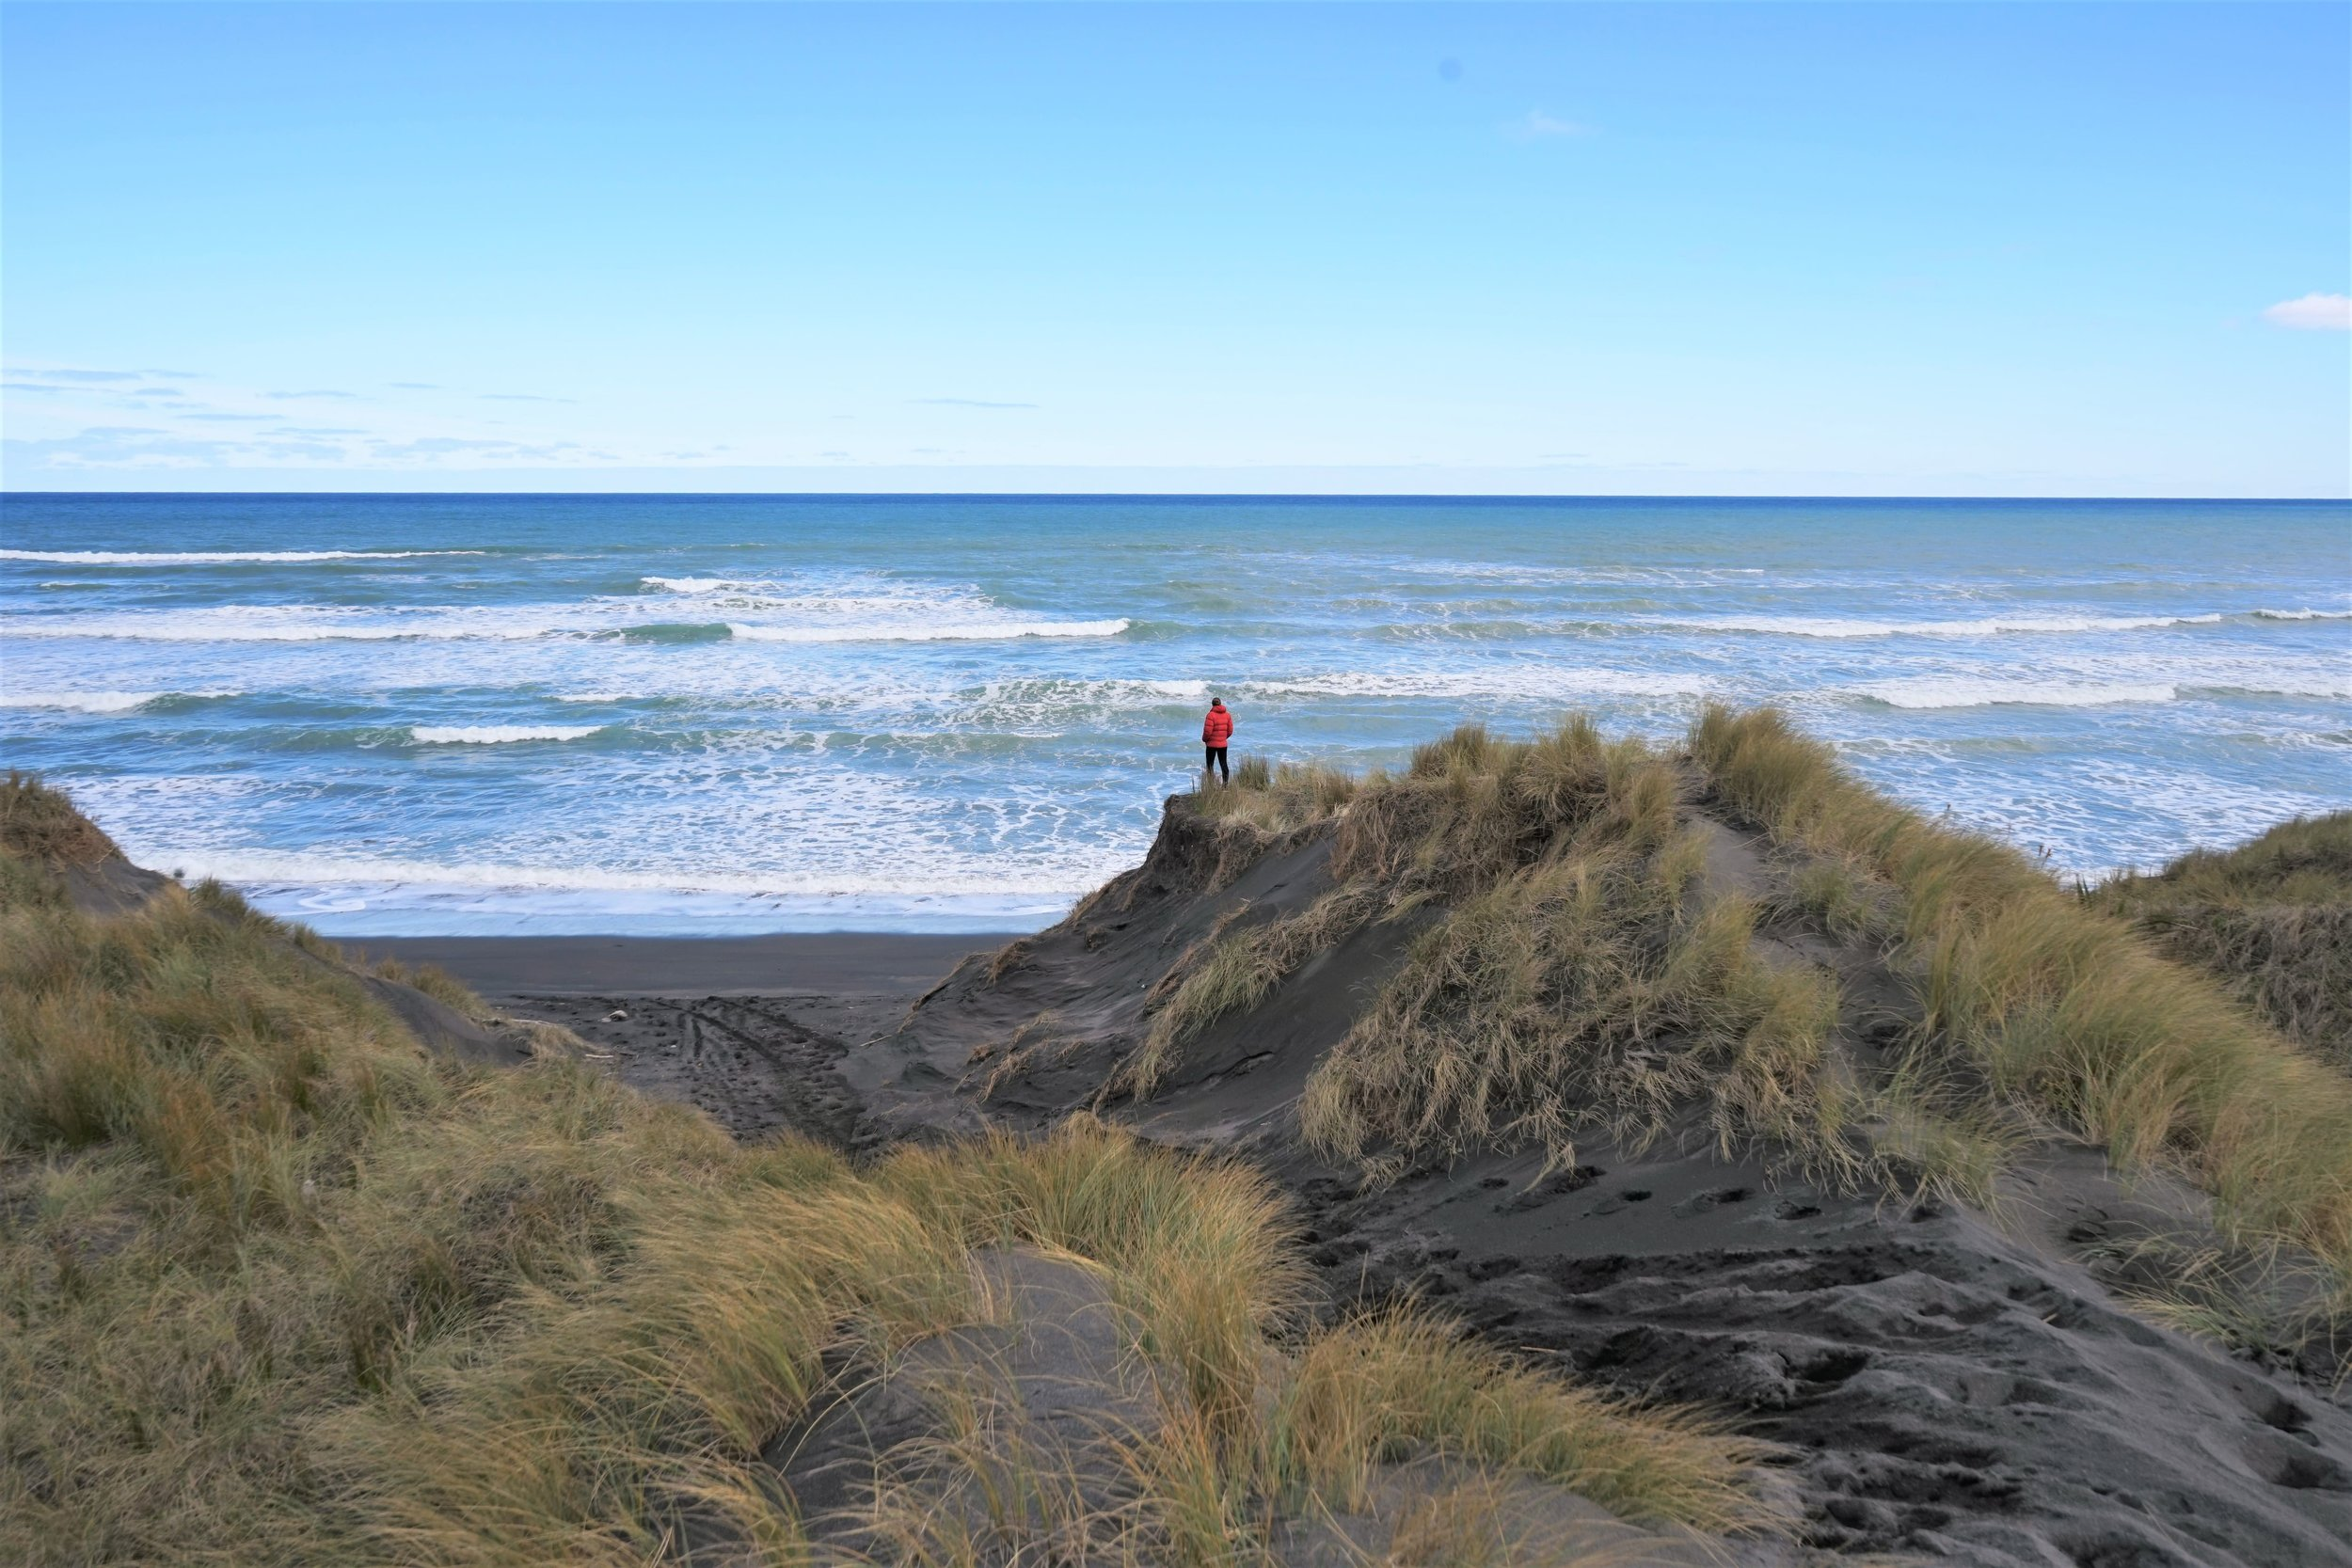 Coming towards or from New Plymouth via the surf highway 45 is one of the best ways to start your New Plymouth adventure